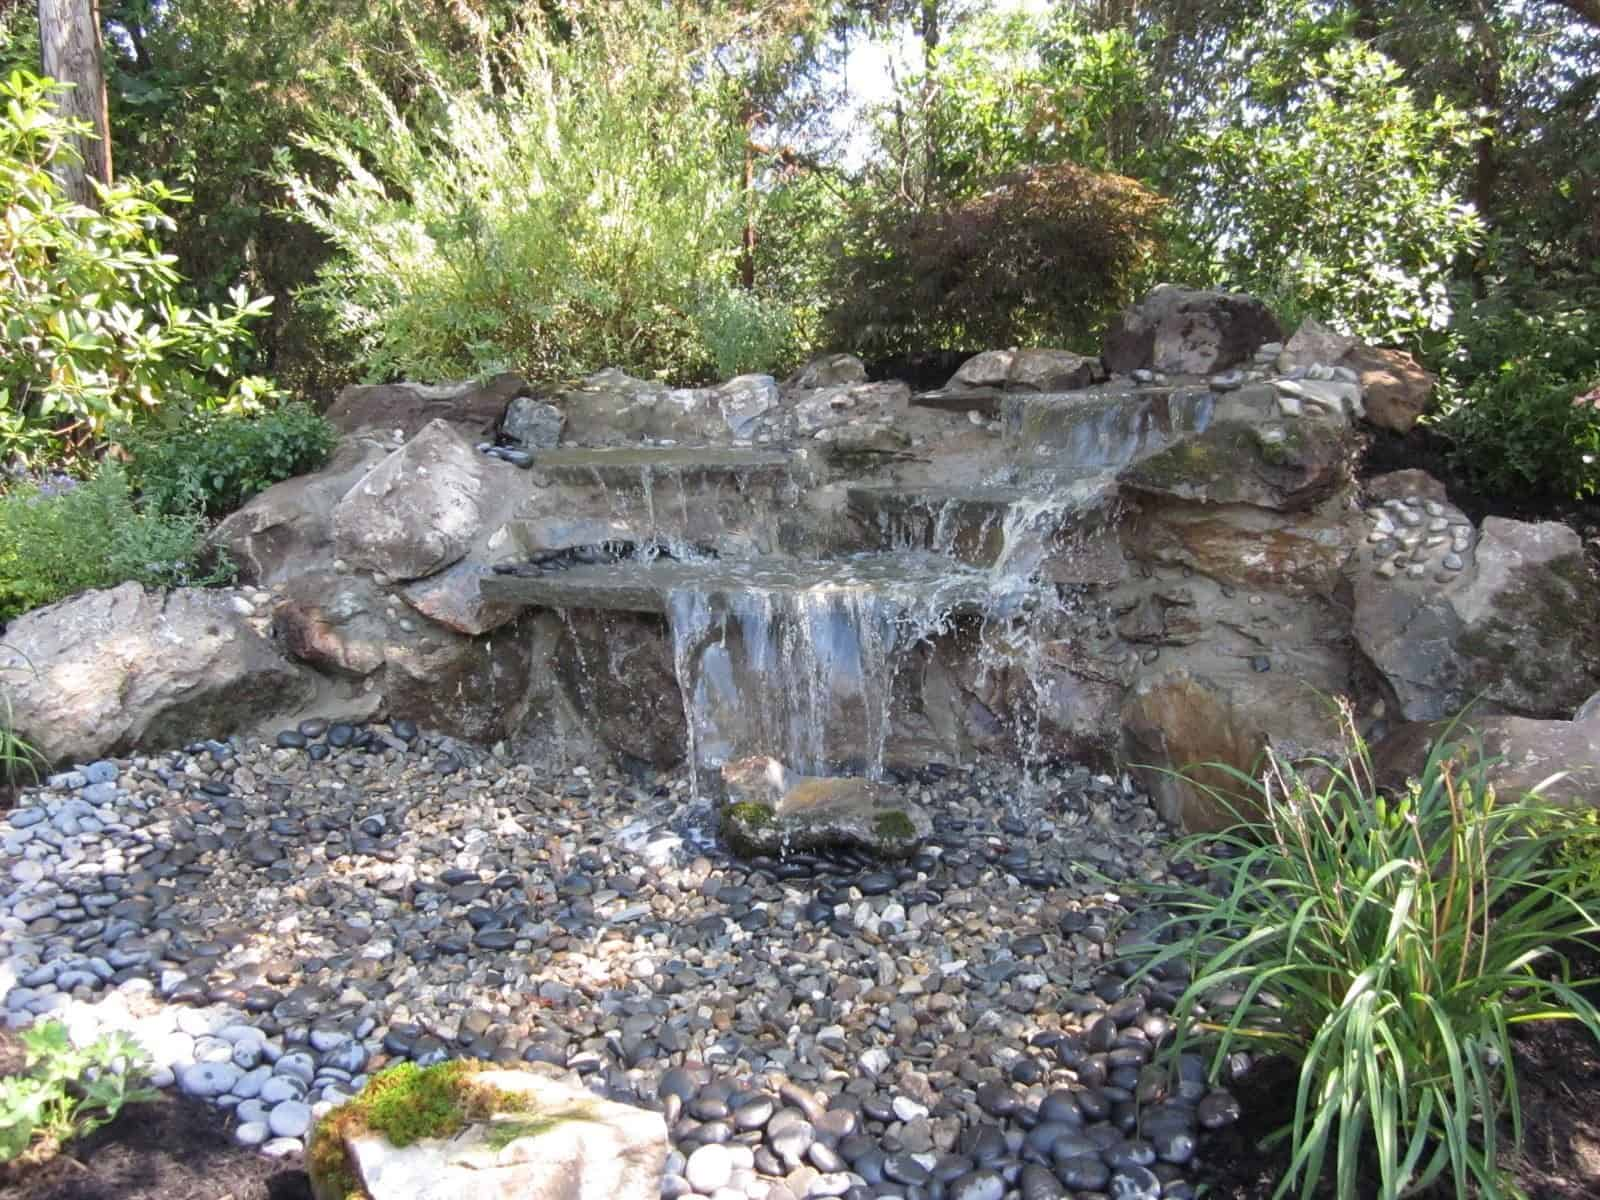 5' Moss Rock Pondless Waterfall with Mexican Beach Pebbles - Jericho, Long Island NY